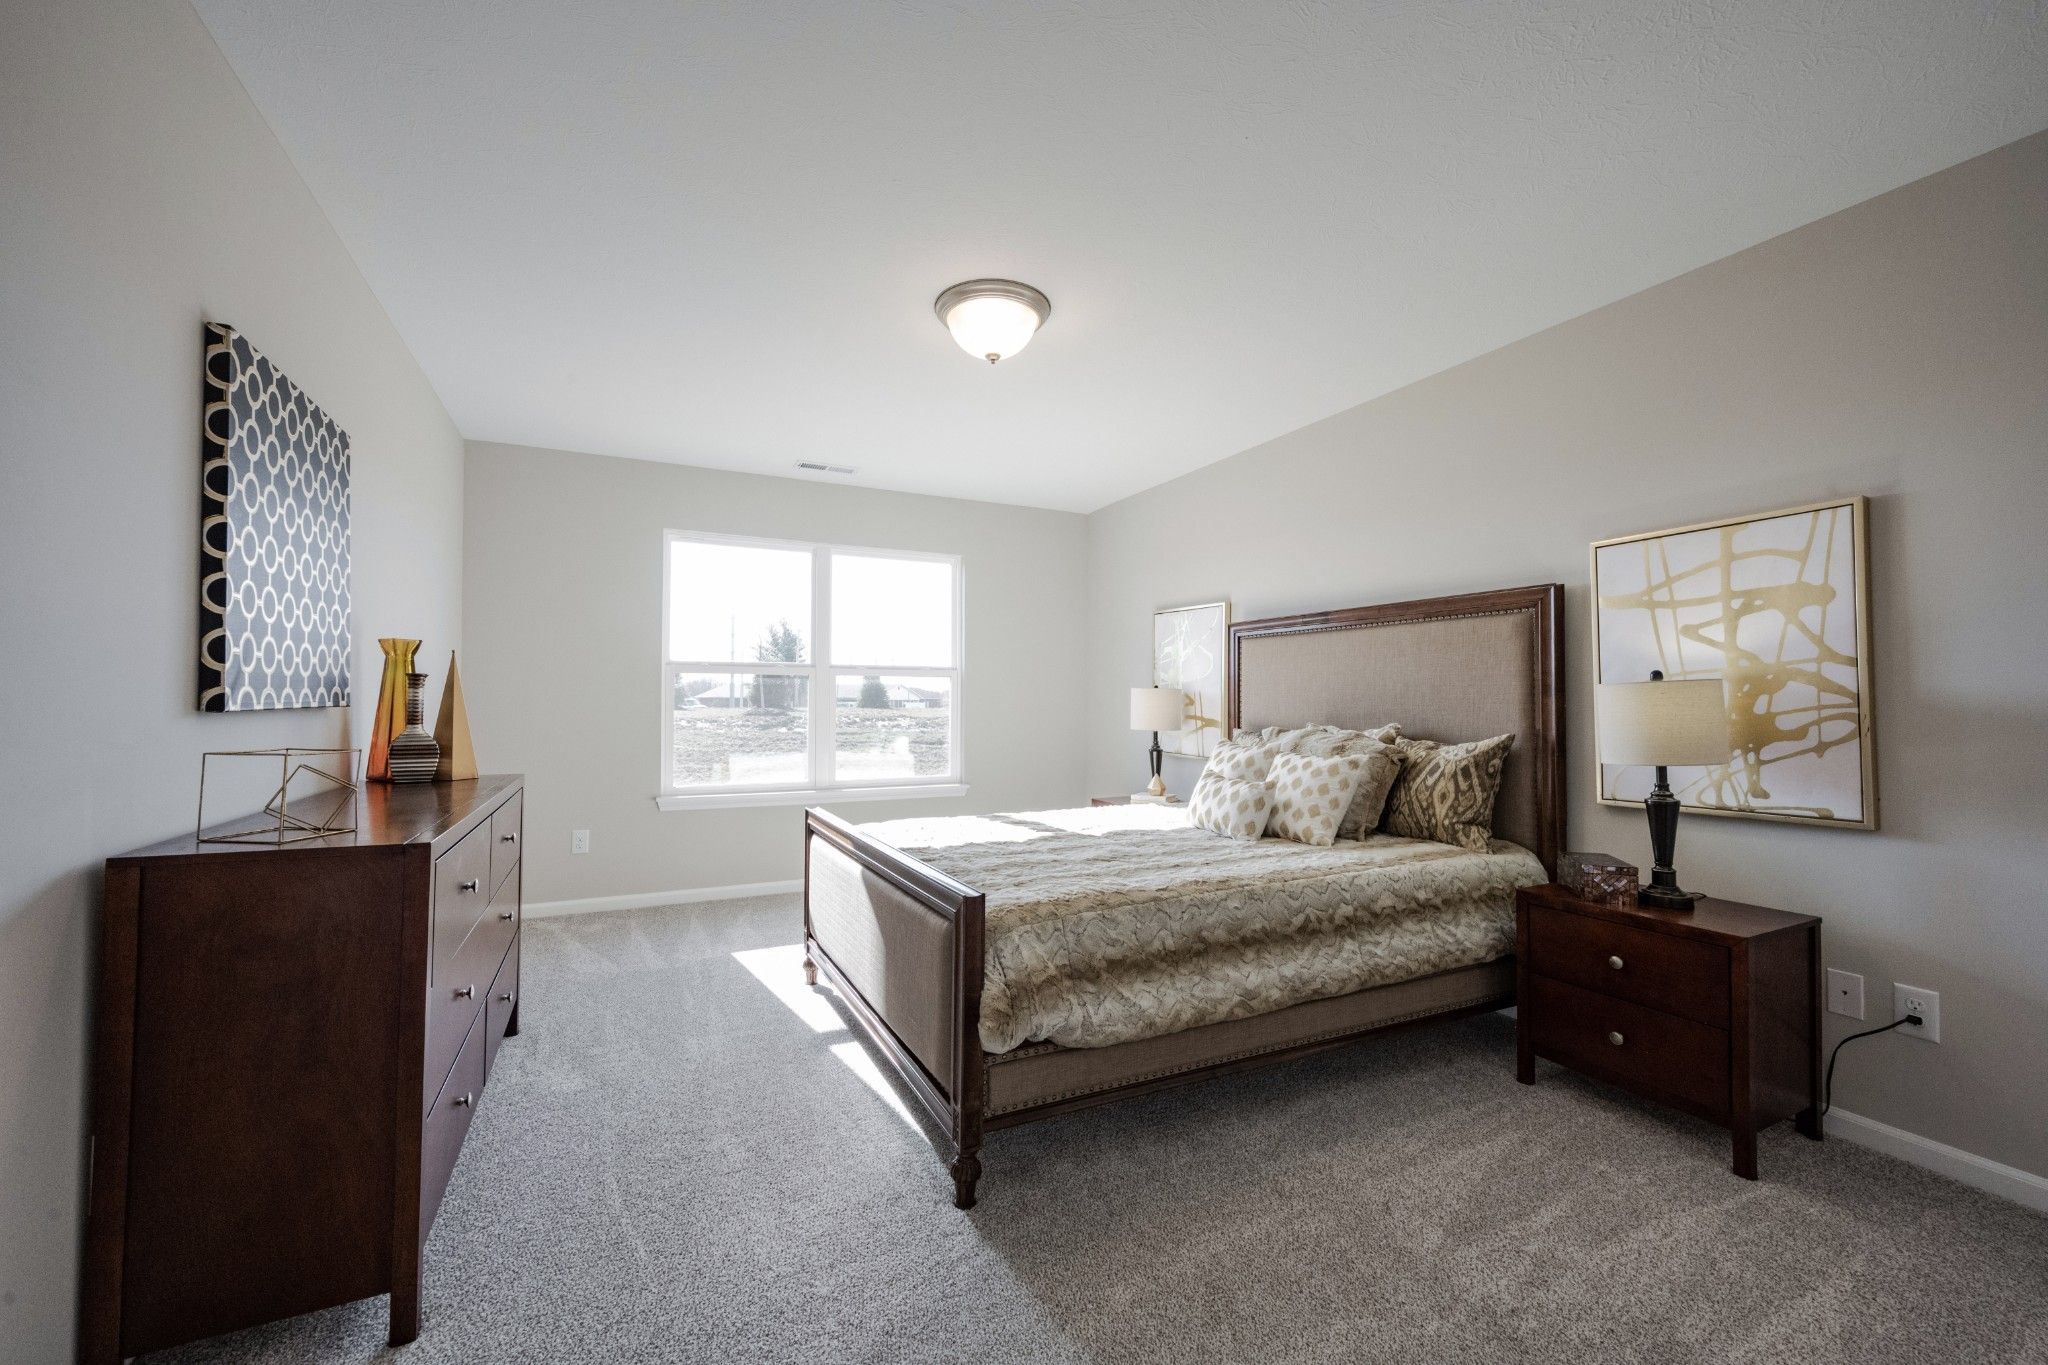 Bedroom featured in the Laine By Olthof Homes in Indianapolis, IN